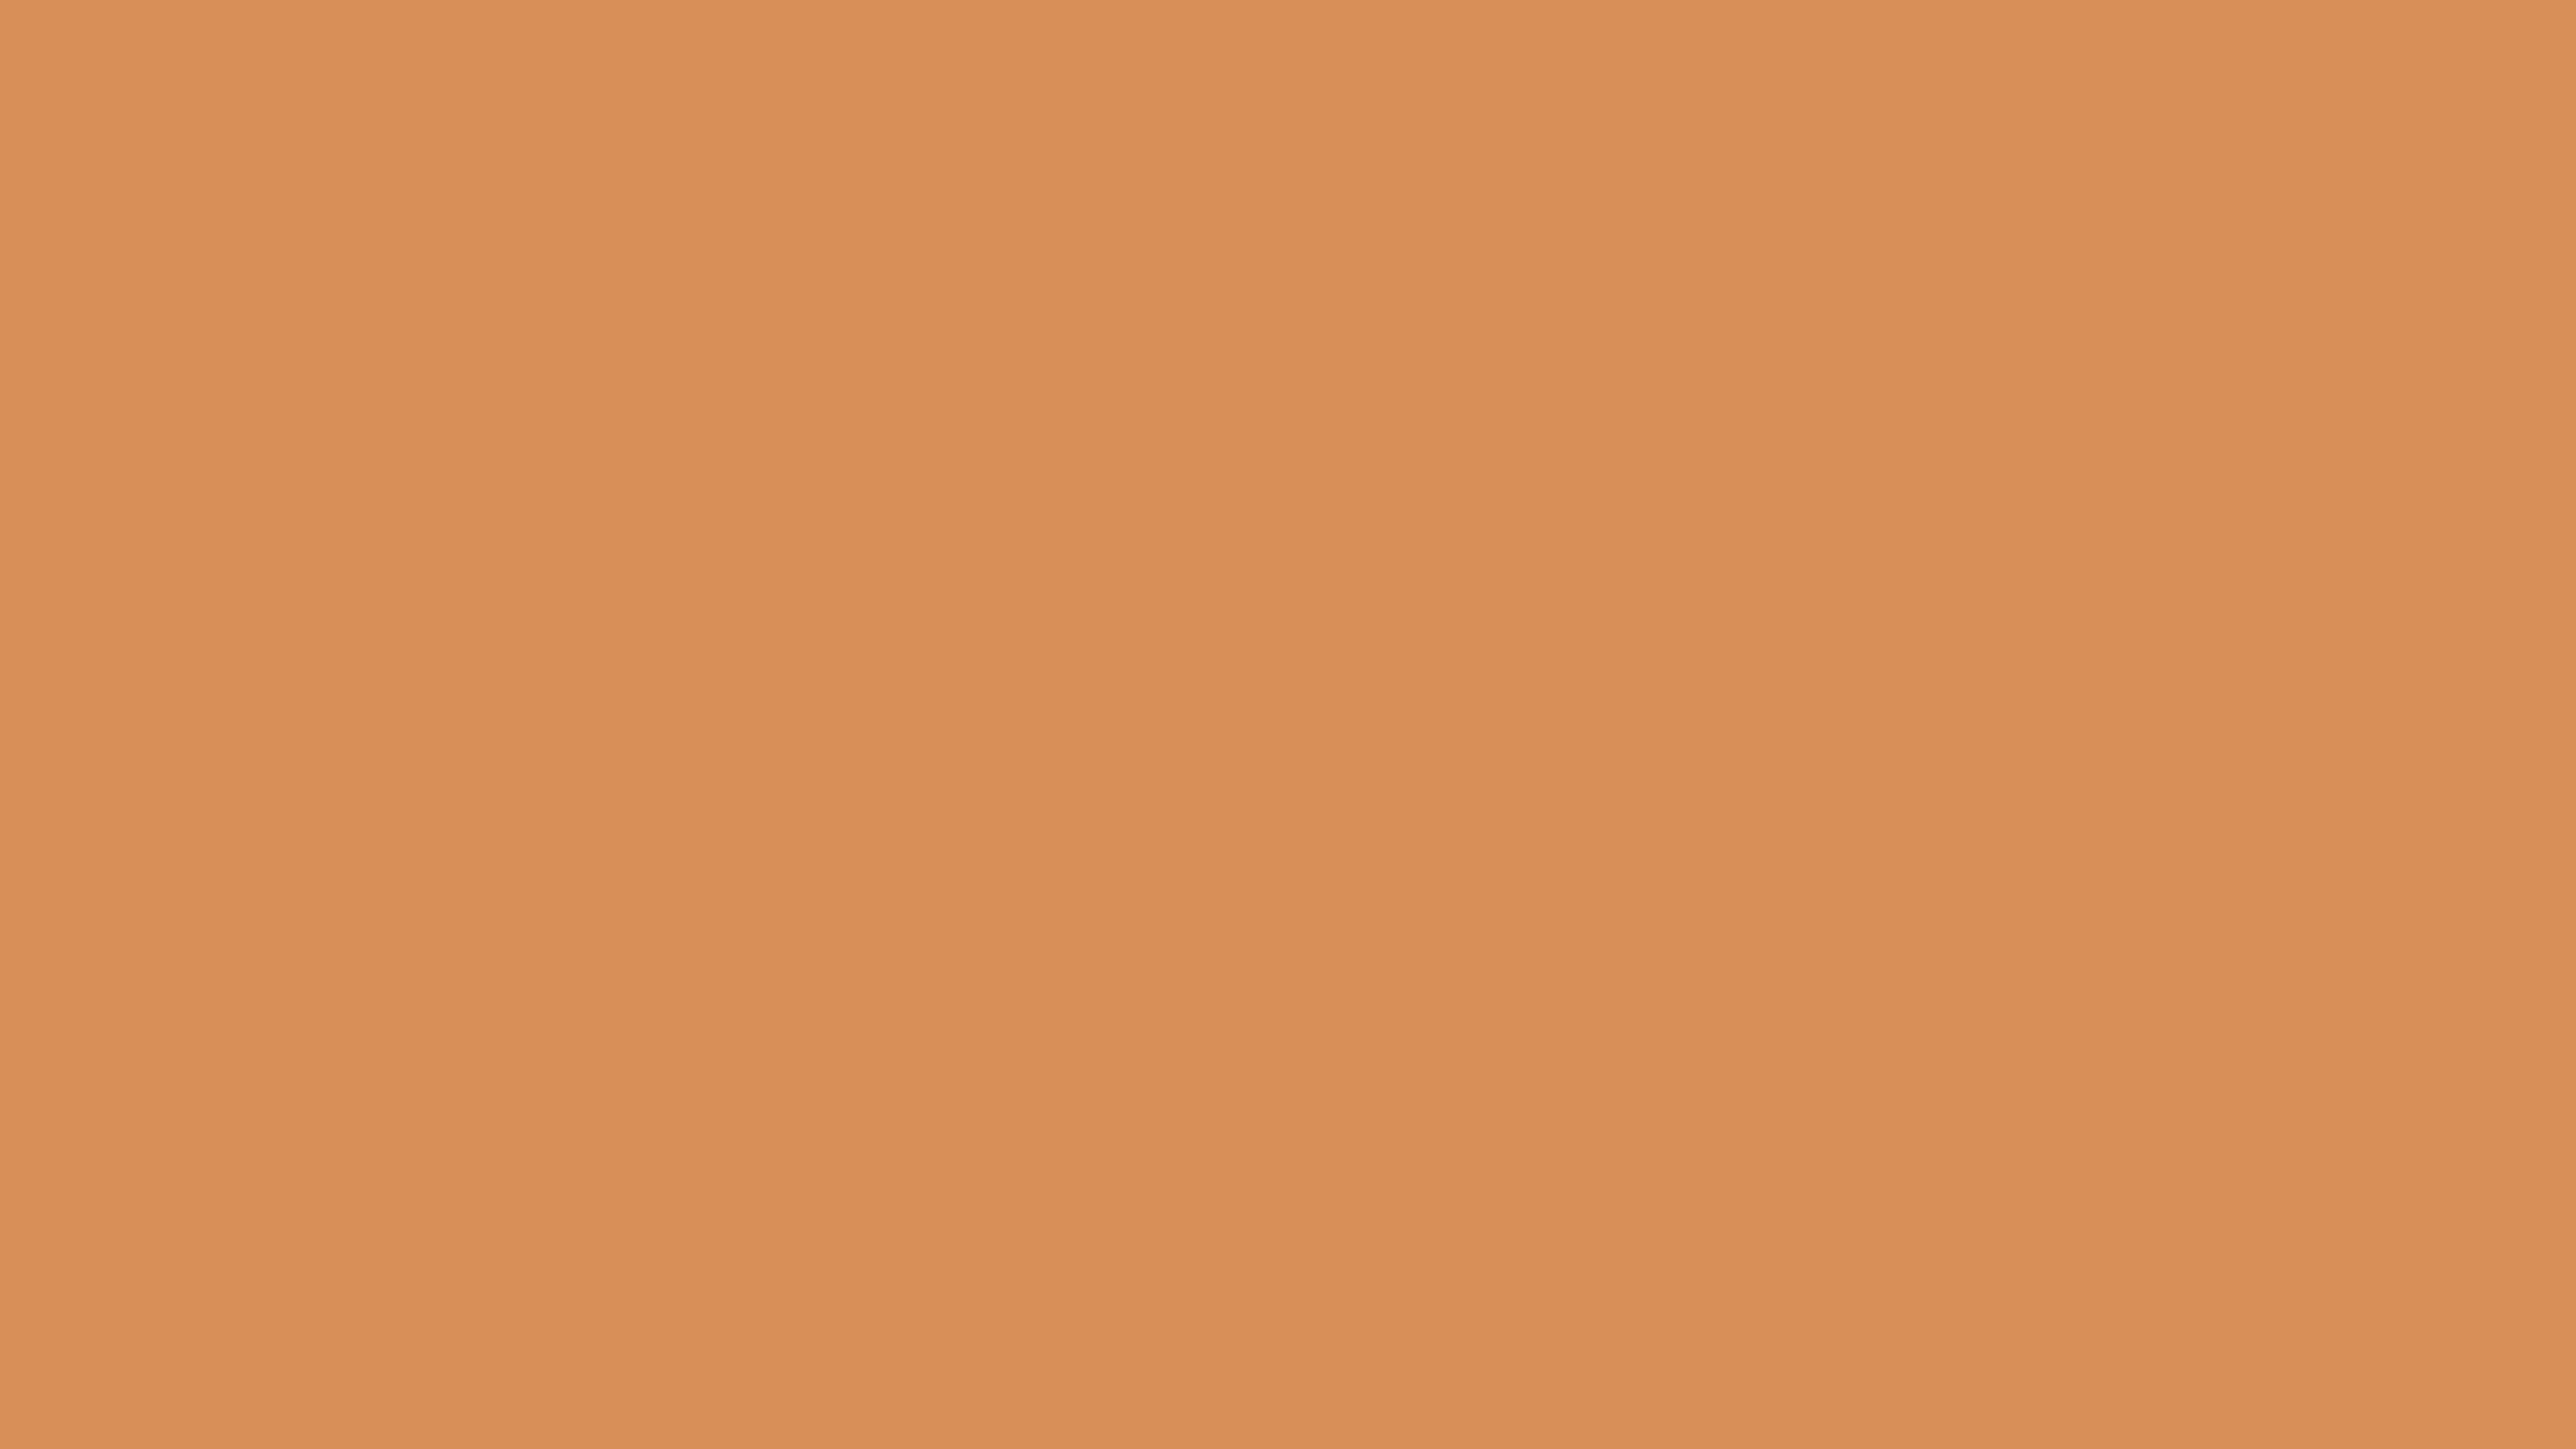 3840x2160 Persian Orange Solid Color Background